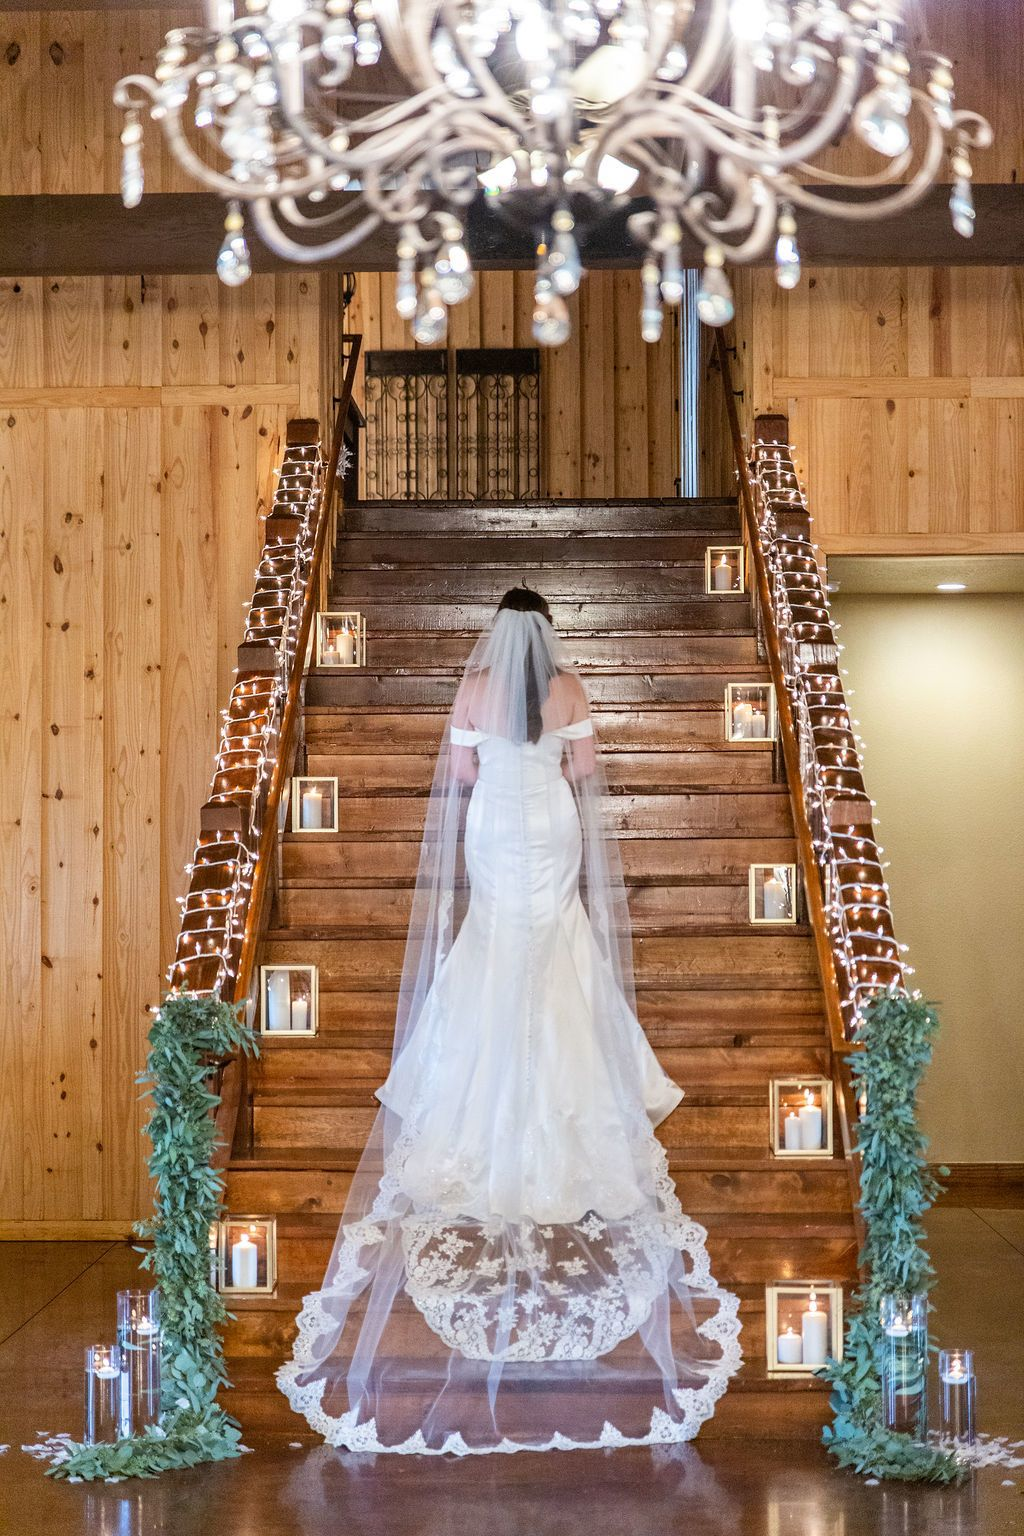 Tulsa Wedding Venue Springs Venue Tulsa Wedding Venues Wedding Staircase Decoration Wedding Staircase